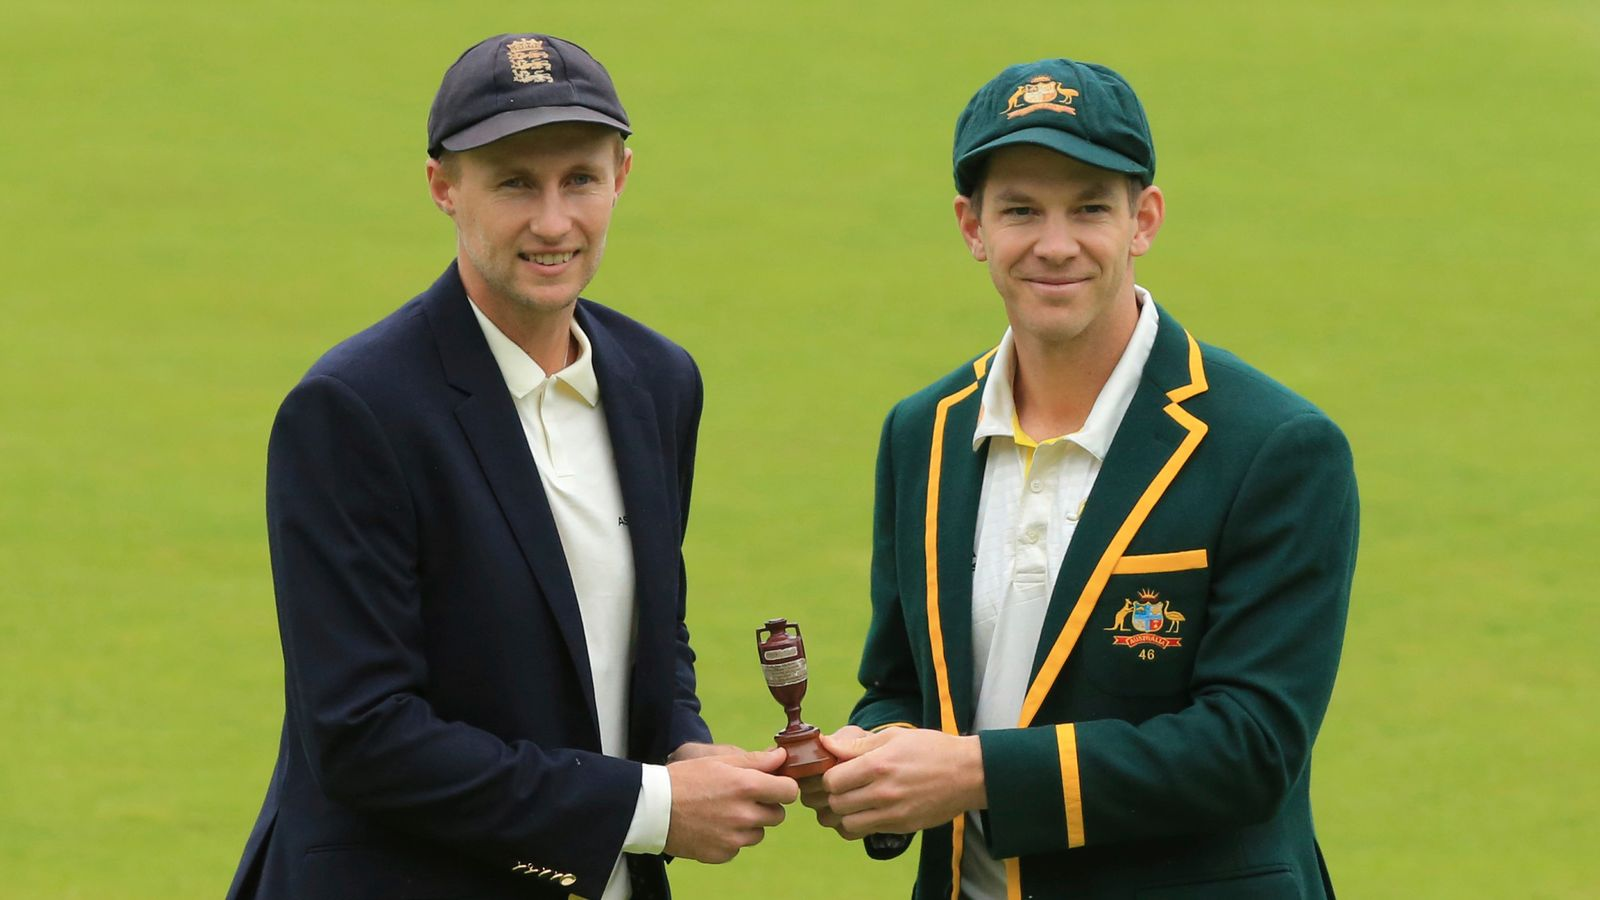 The Ashes: ECB and Cricket Australia announce schedule for men's and women's 2021/22 series